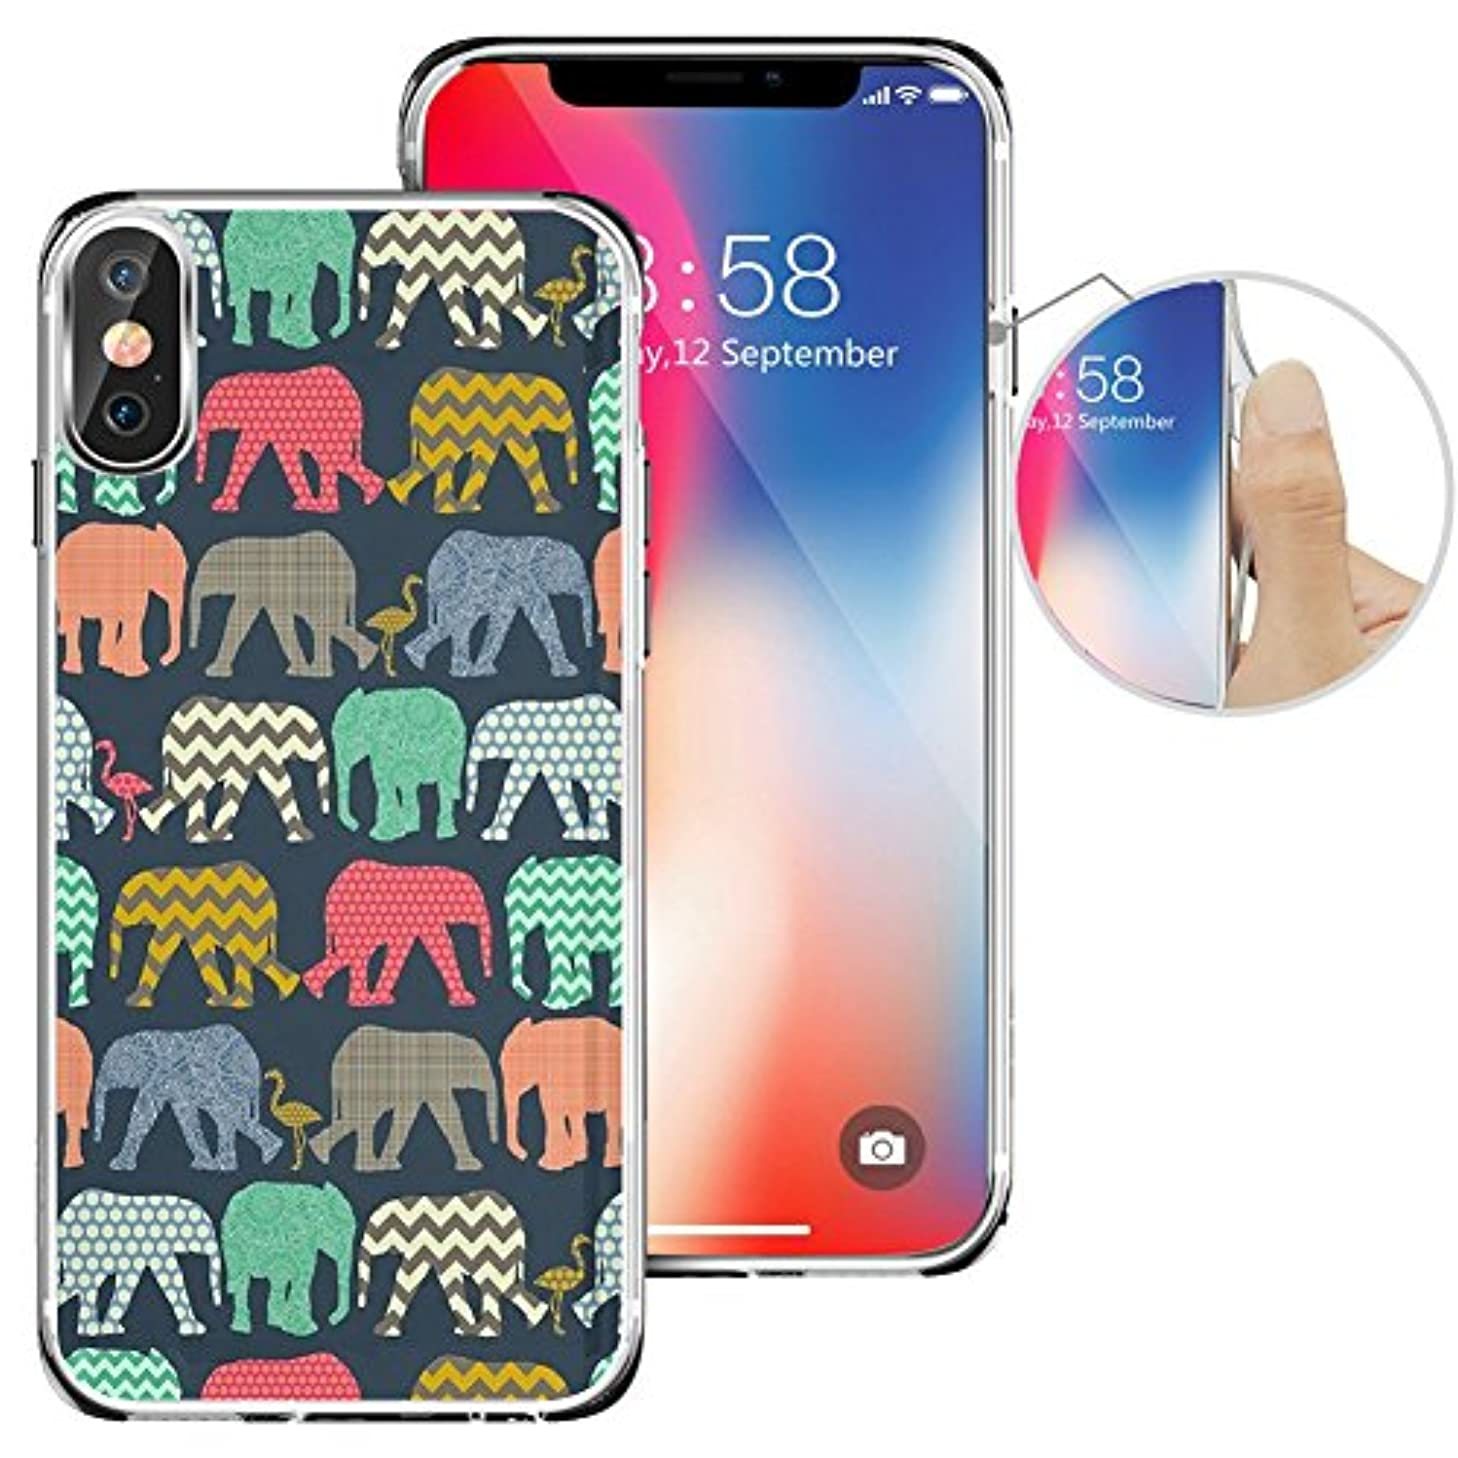 iPhone X Case Henna Mayan Aztec tribal elephant, LAACO Scratch Resistant TPU Gel Rubber Soft Skin Silicone Protective Case Cover for 5.8